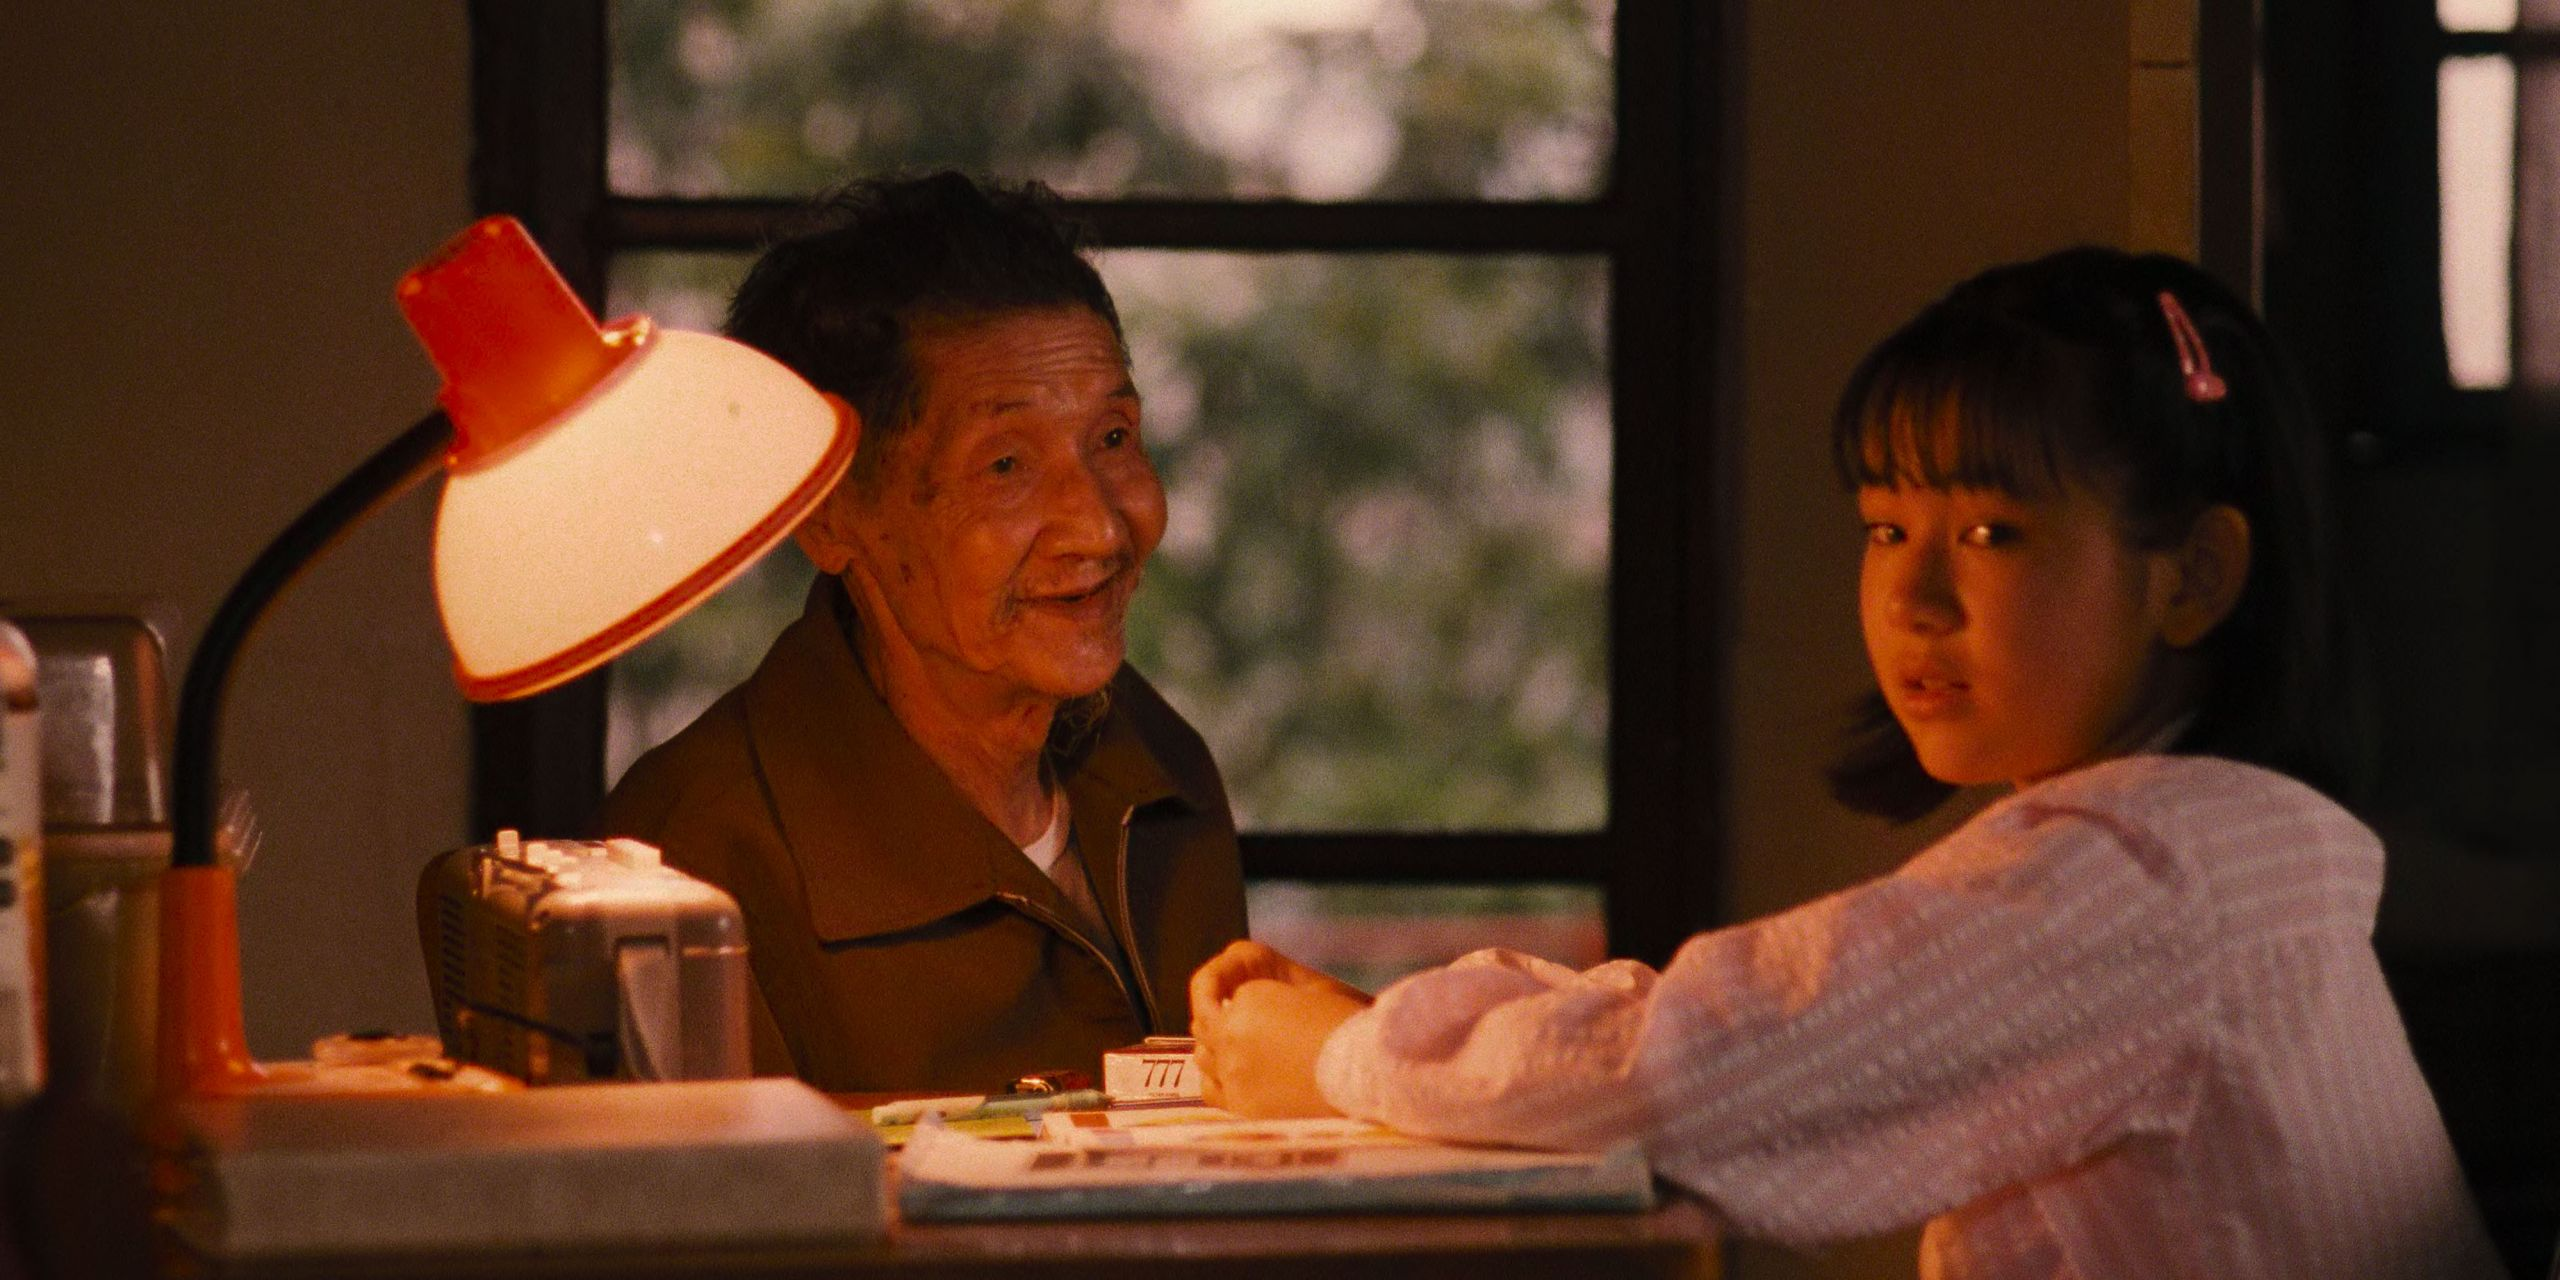 Stil from Daughter of the Nile, Taiwan 1987, directed by Hou Hsiao-hsien